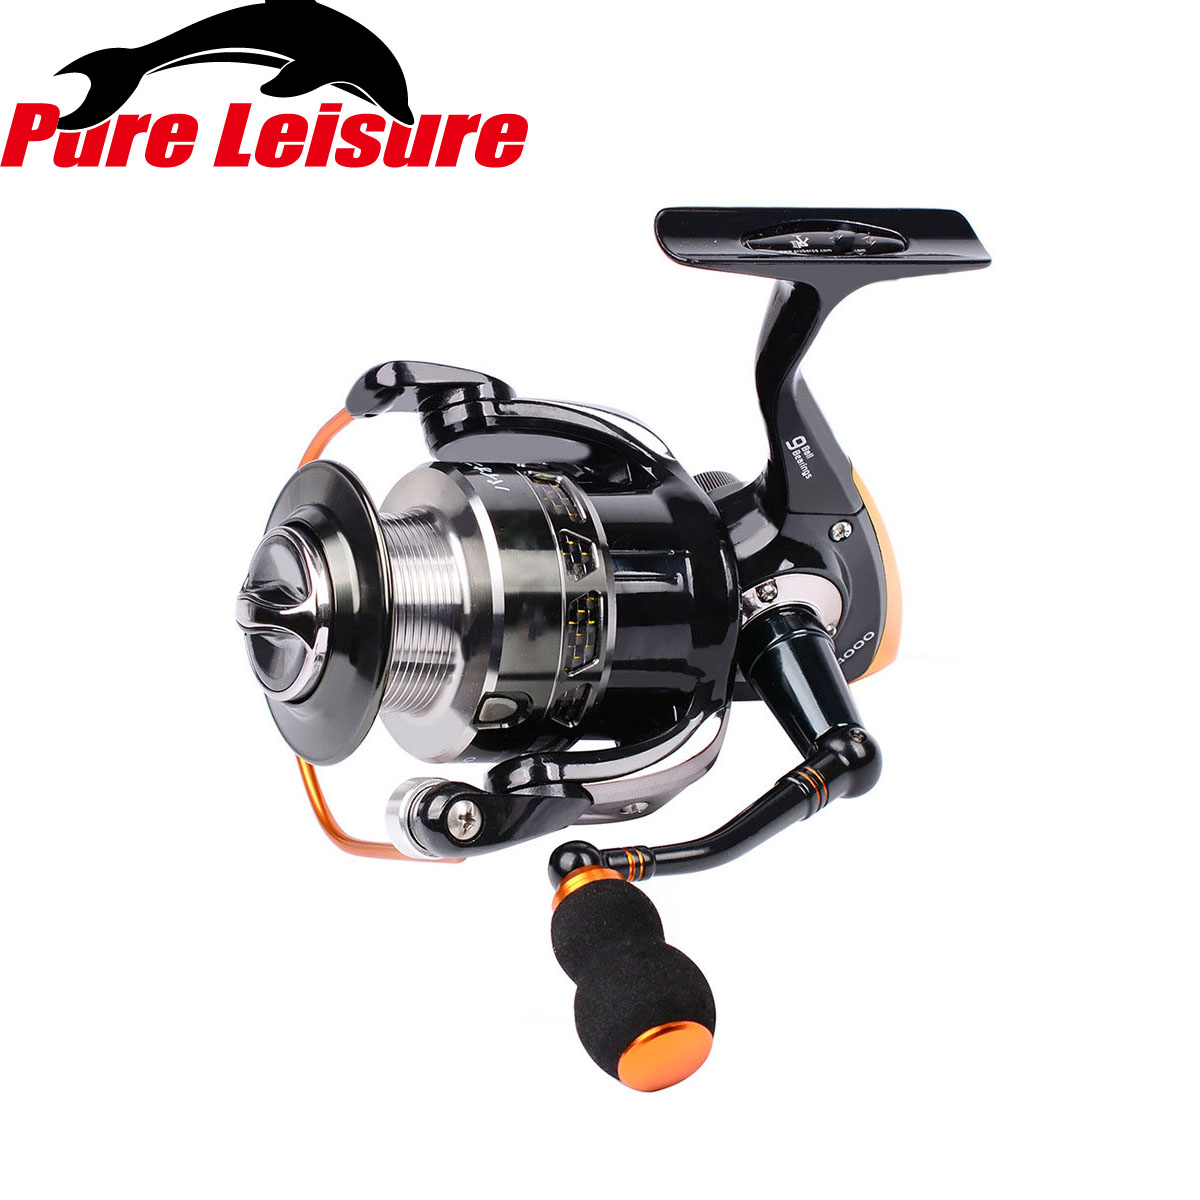 small resolution of pureleisure st1000 fishing reel parts spinning metal head reel 9bb reel spinning wheels rock fishing lure round reel 5 5 1 in fishing reels from sports